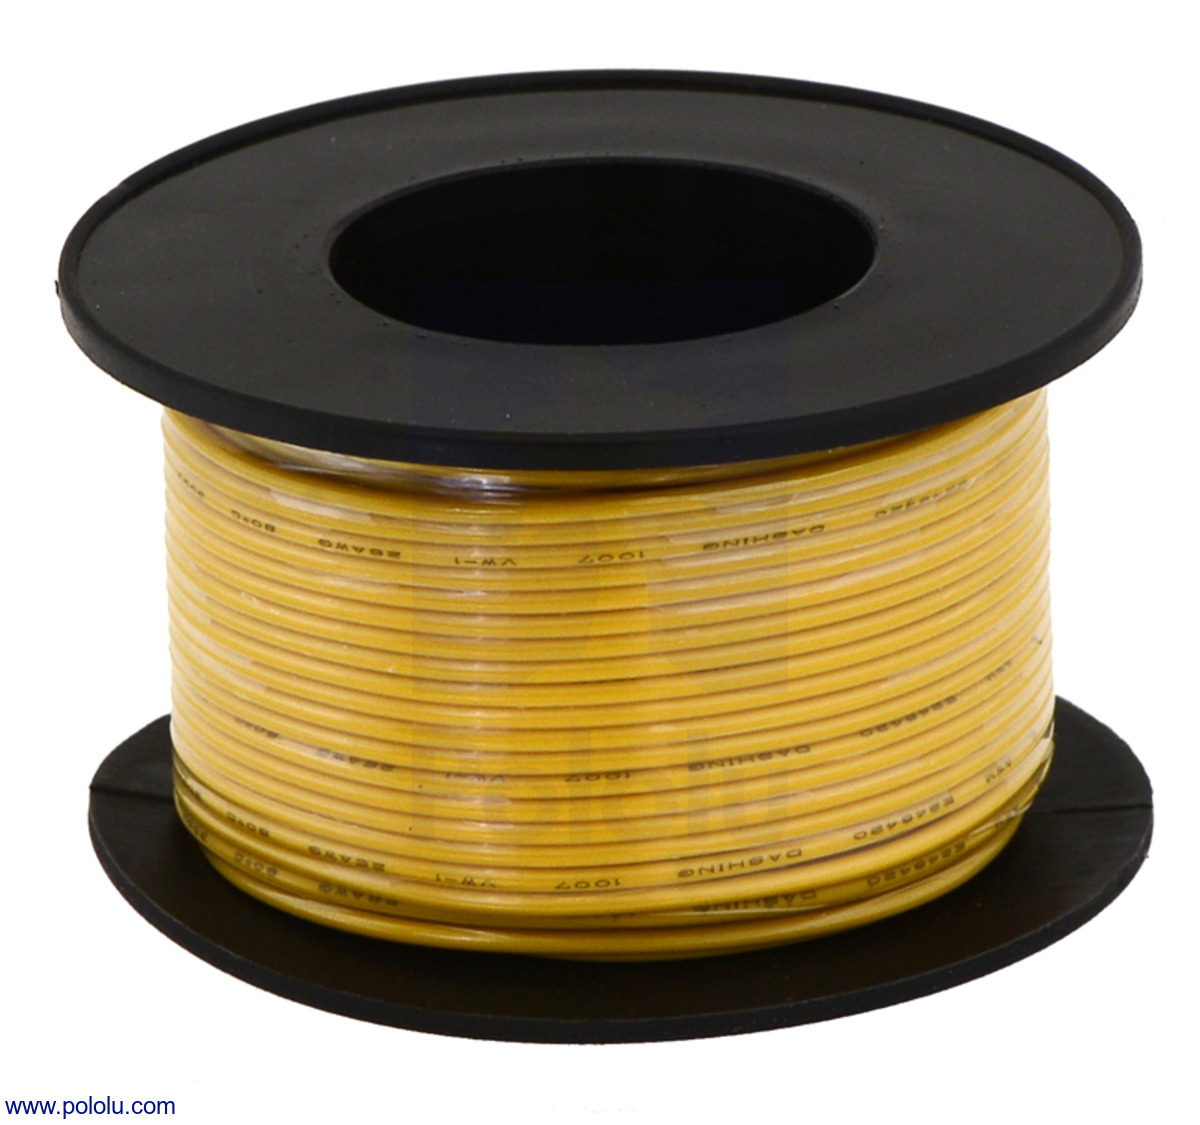 Pololu stranded wire yellow 26 awg 70 feet stranded wire yellow 26 awg 70 feet greentooth Image collections